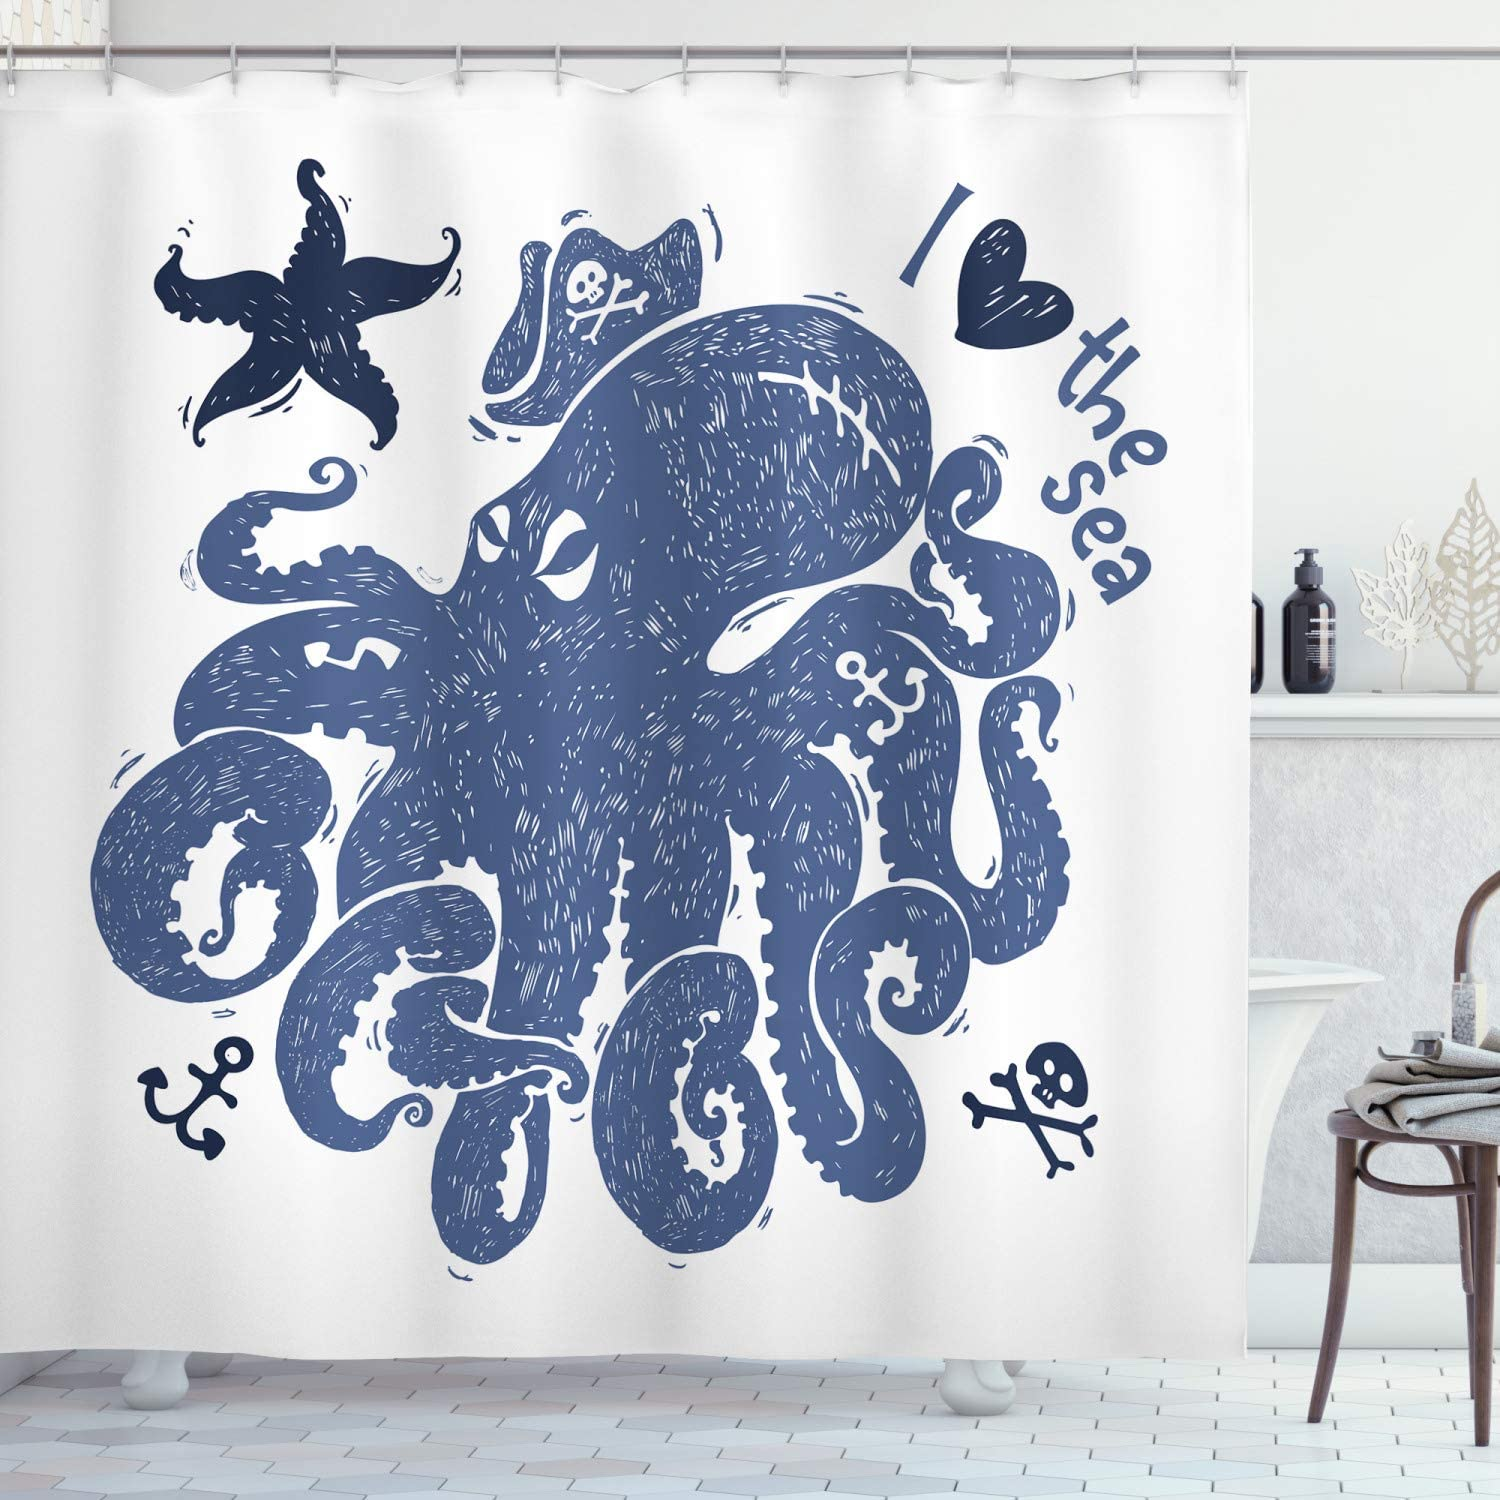 Ambesonne Octopus Shower Curtain, Nautical Theme Image of a Pirate Octopus with Anchors and Starfish Retro, Cloth Fabric Bathroom Decor Set with Hooks, 75